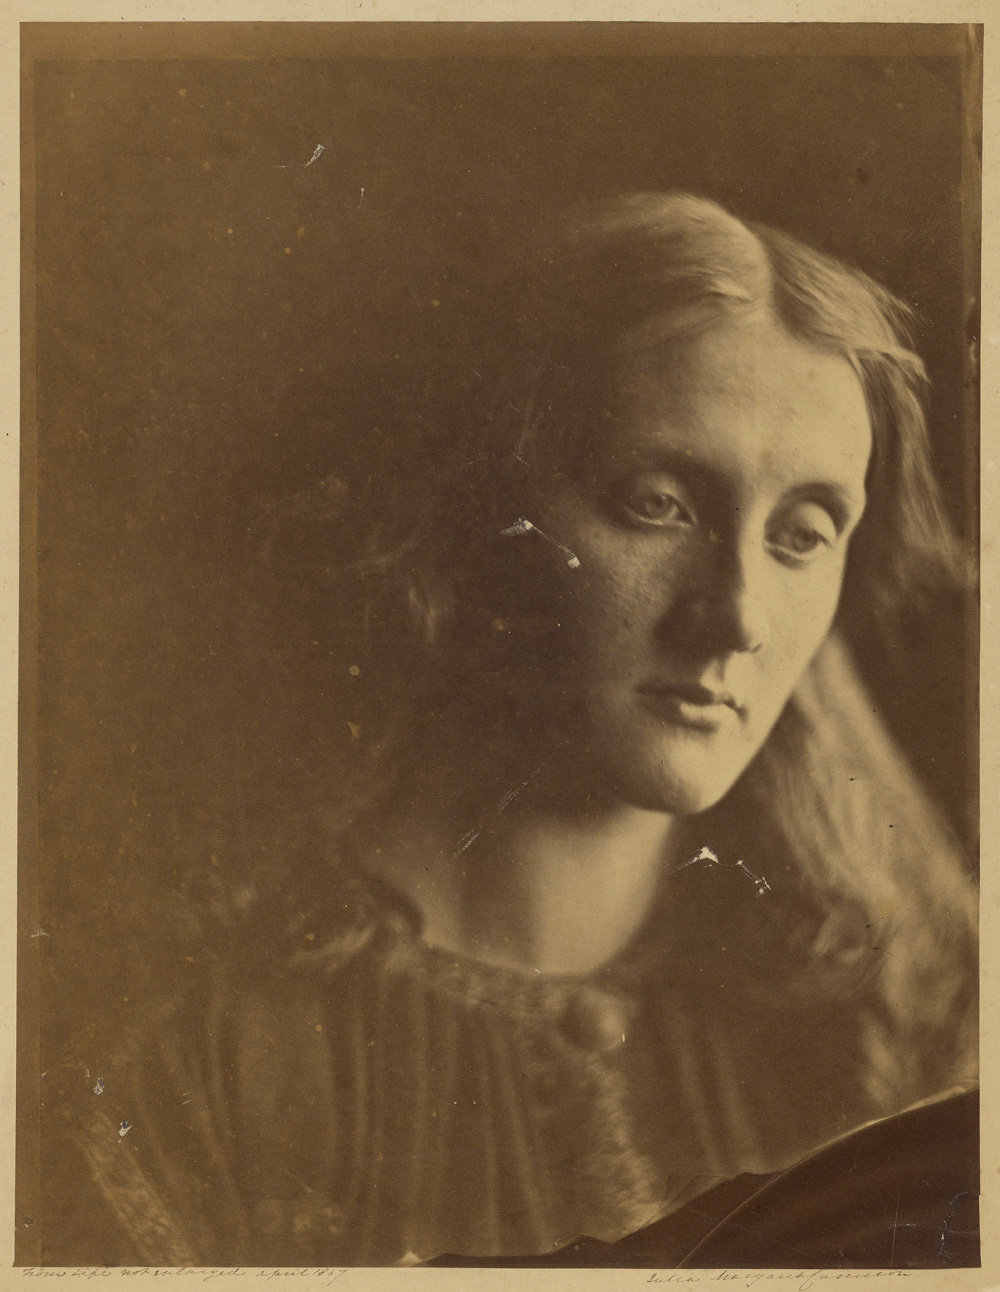 Julia Margaret Cameron (British, born India, 1815 - 1879)  [Julia Jackson],  April 1867, Albumen silver print 34.4 x 26.7 cm (13 9/16 x 10 1/2 in.) The J. Paul Getty Museum, Los Angeles